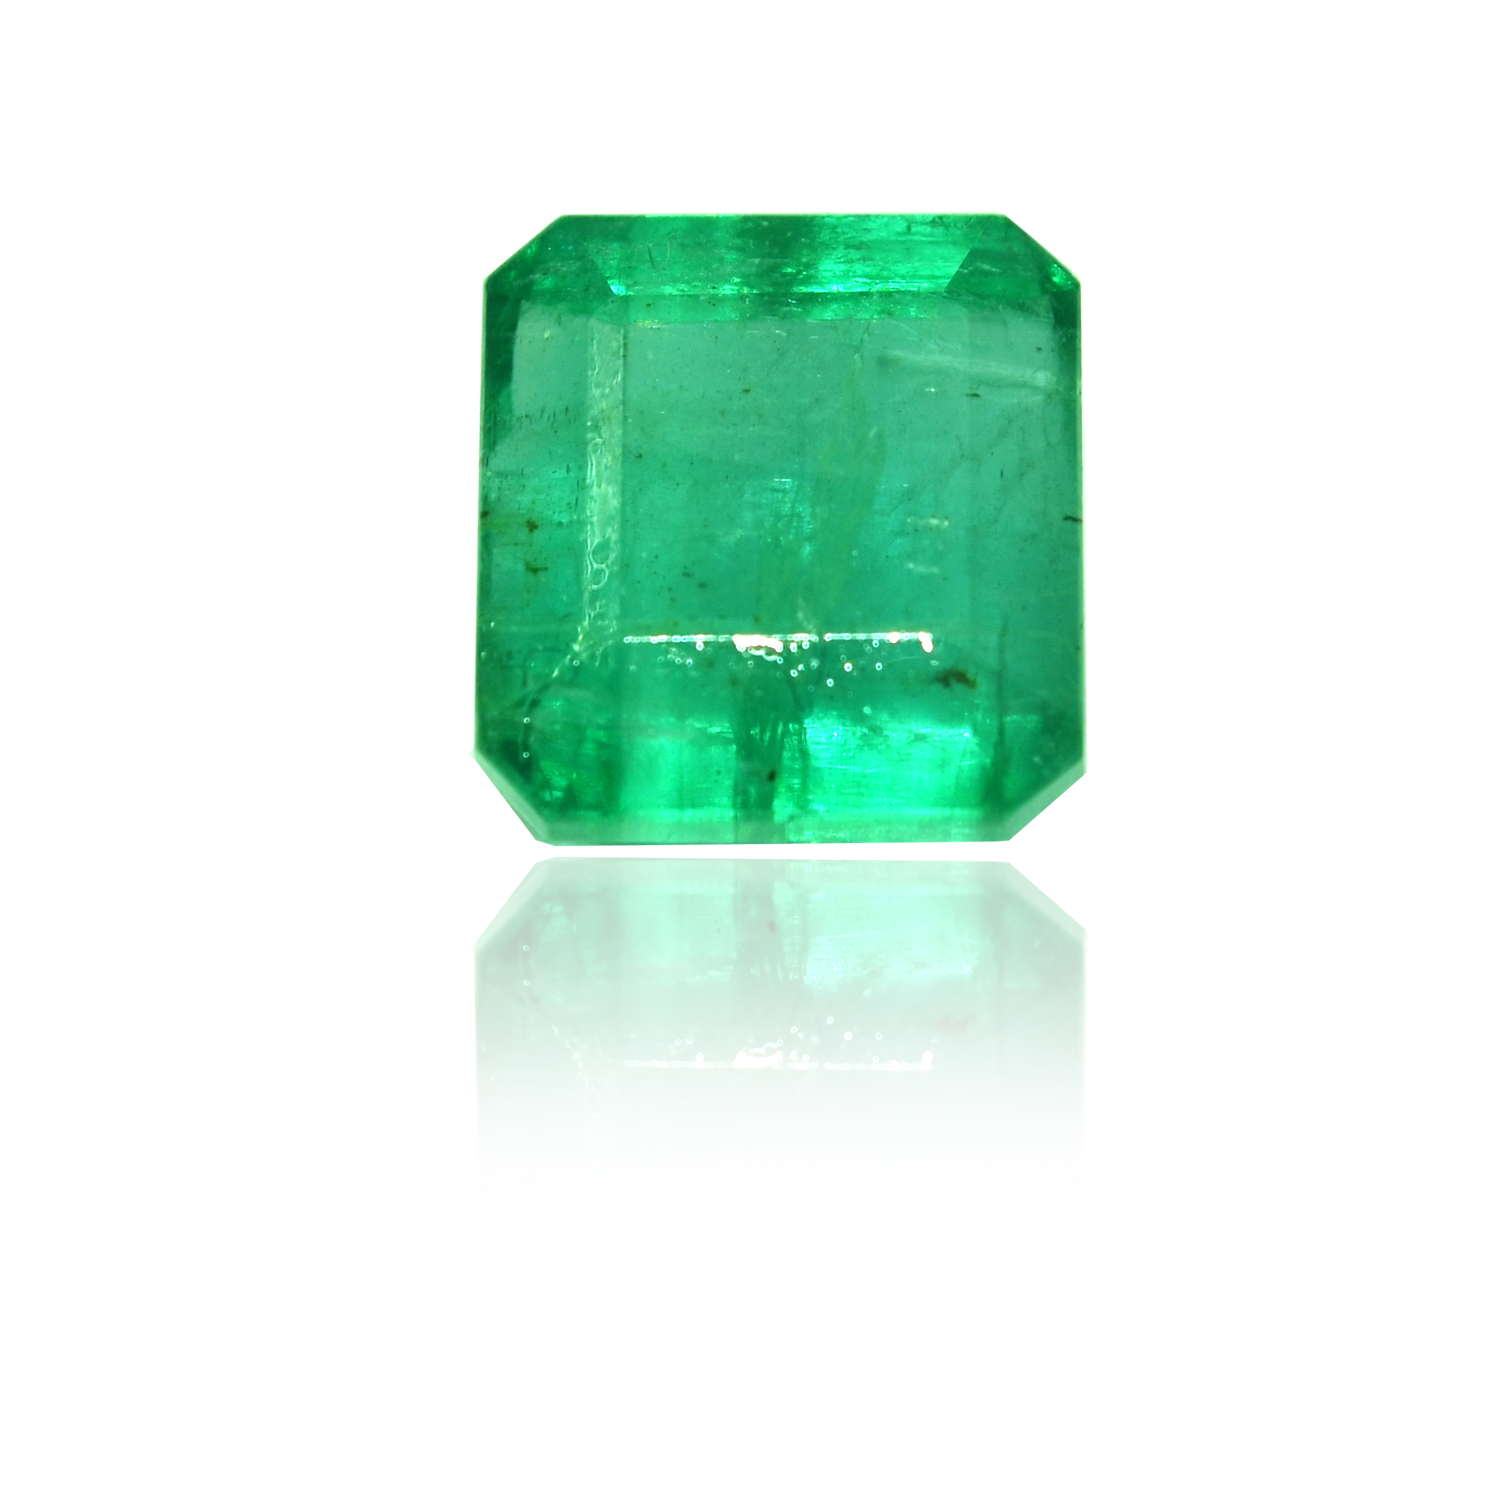 7.78 CARAT, SQURE MIXED CUT NATURAL EMERALD